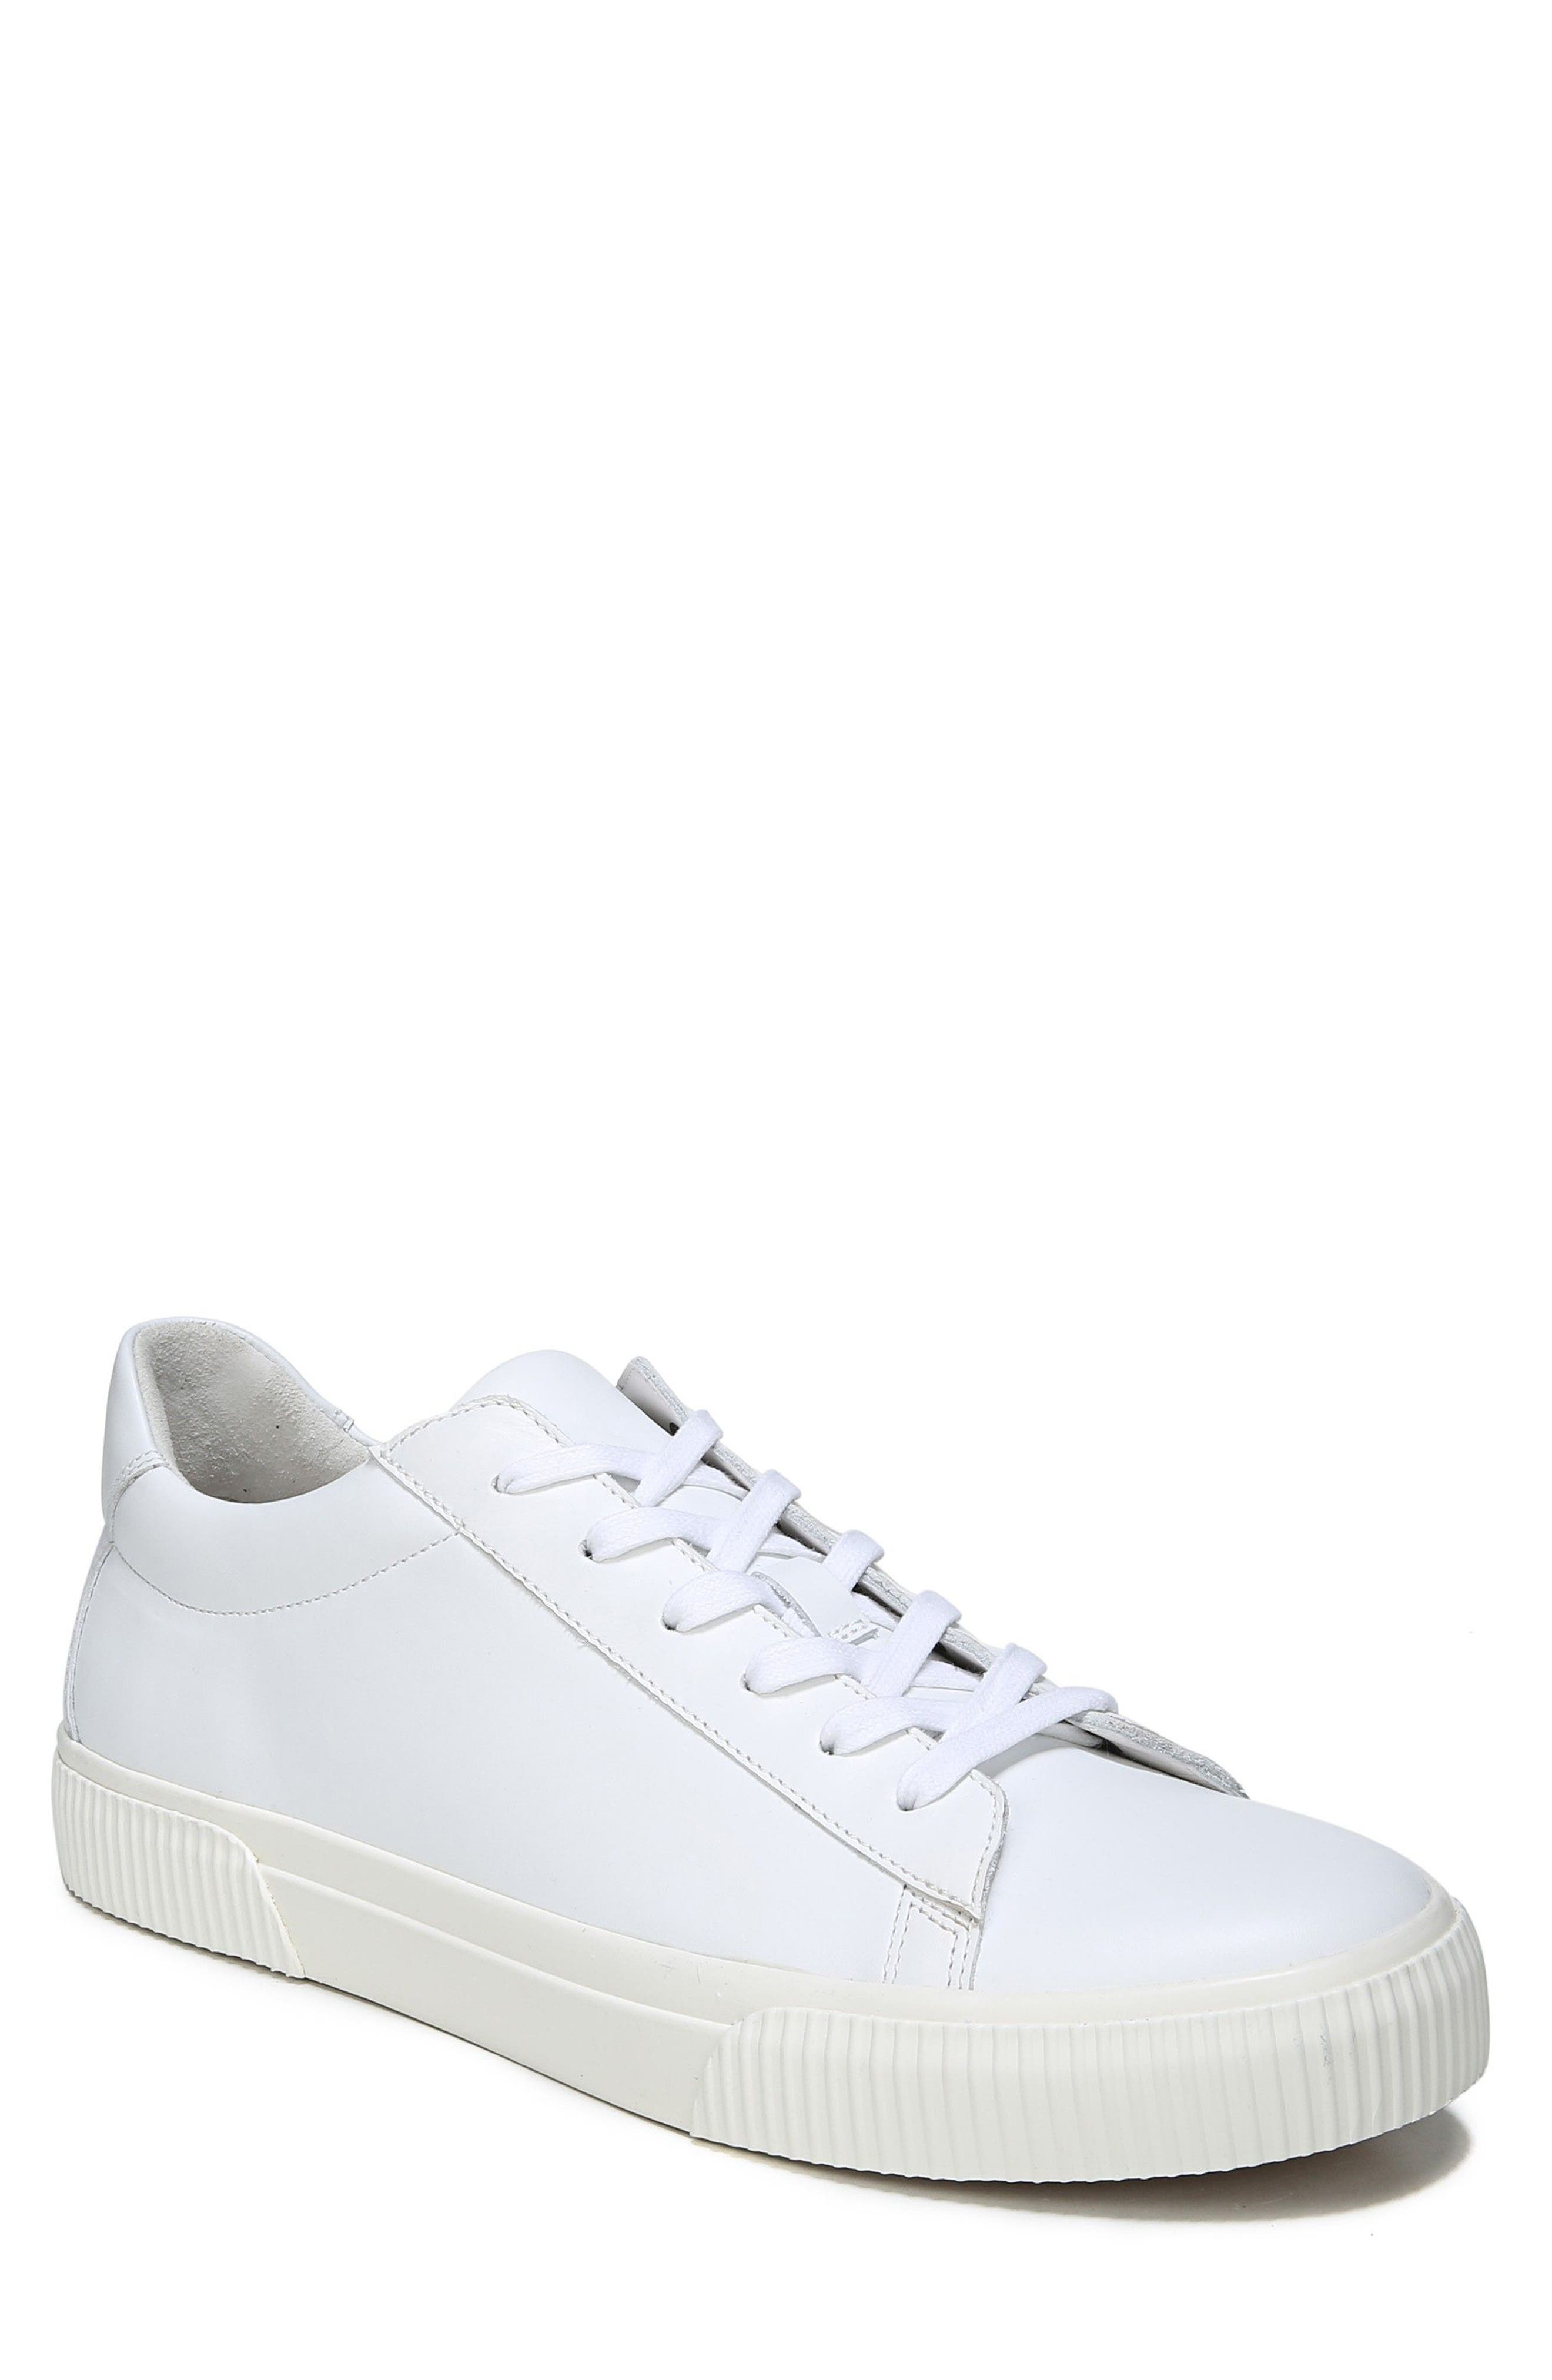 Kurtis Low Top Sneaker,                             Main thumbnail 1, color,                             WHITE